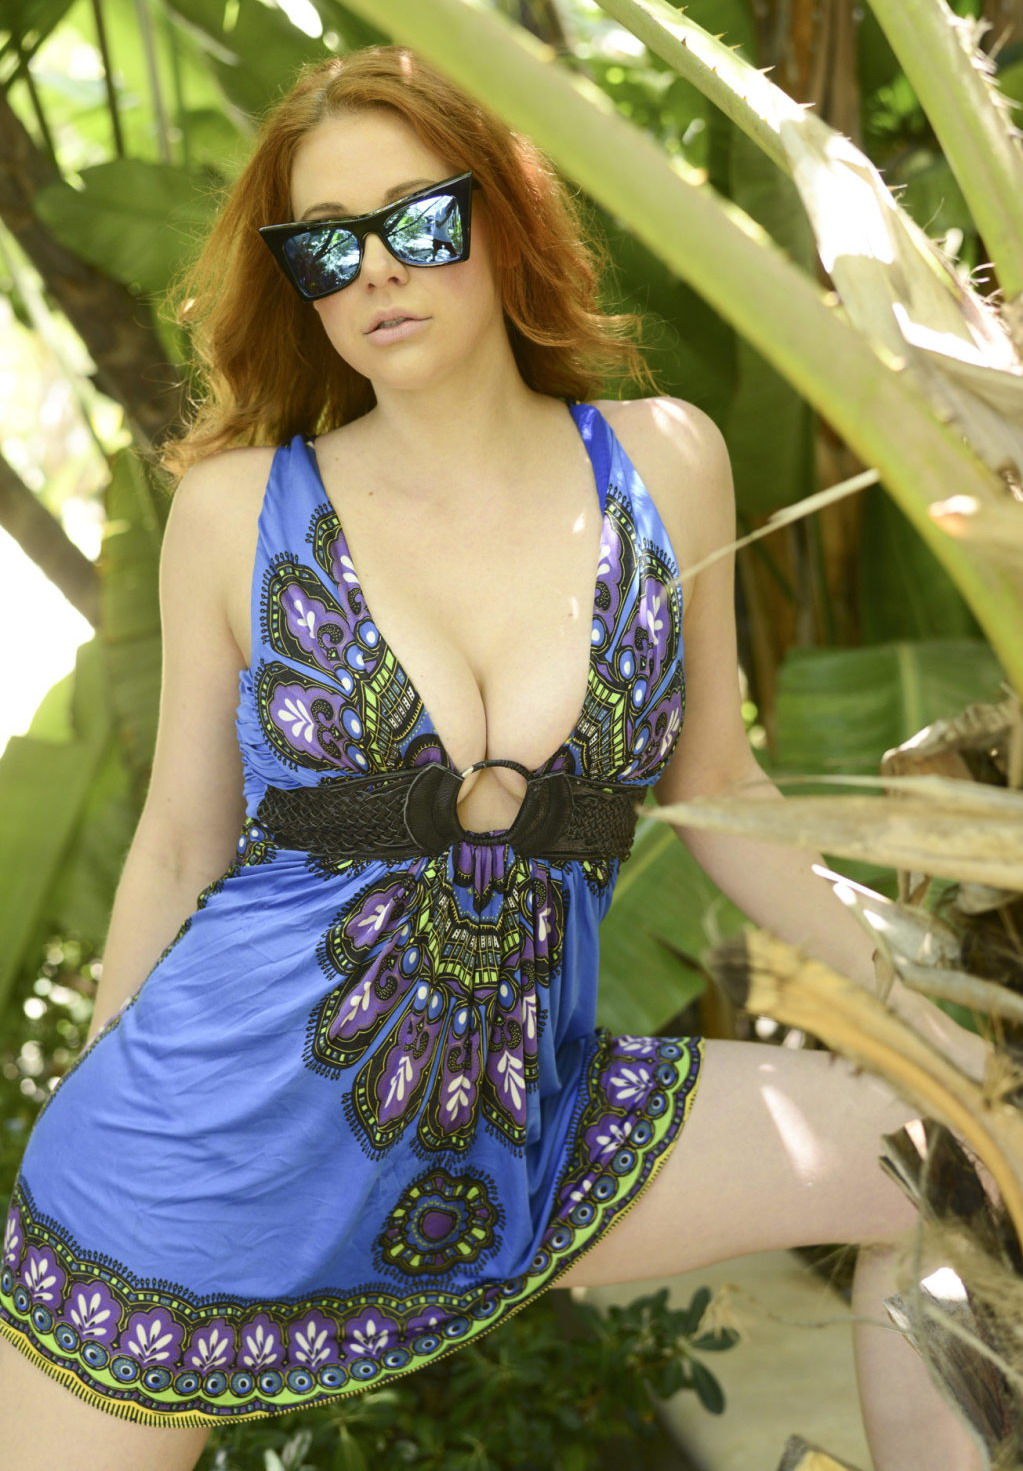 Maitland Ward Cleavage (11 Photos)